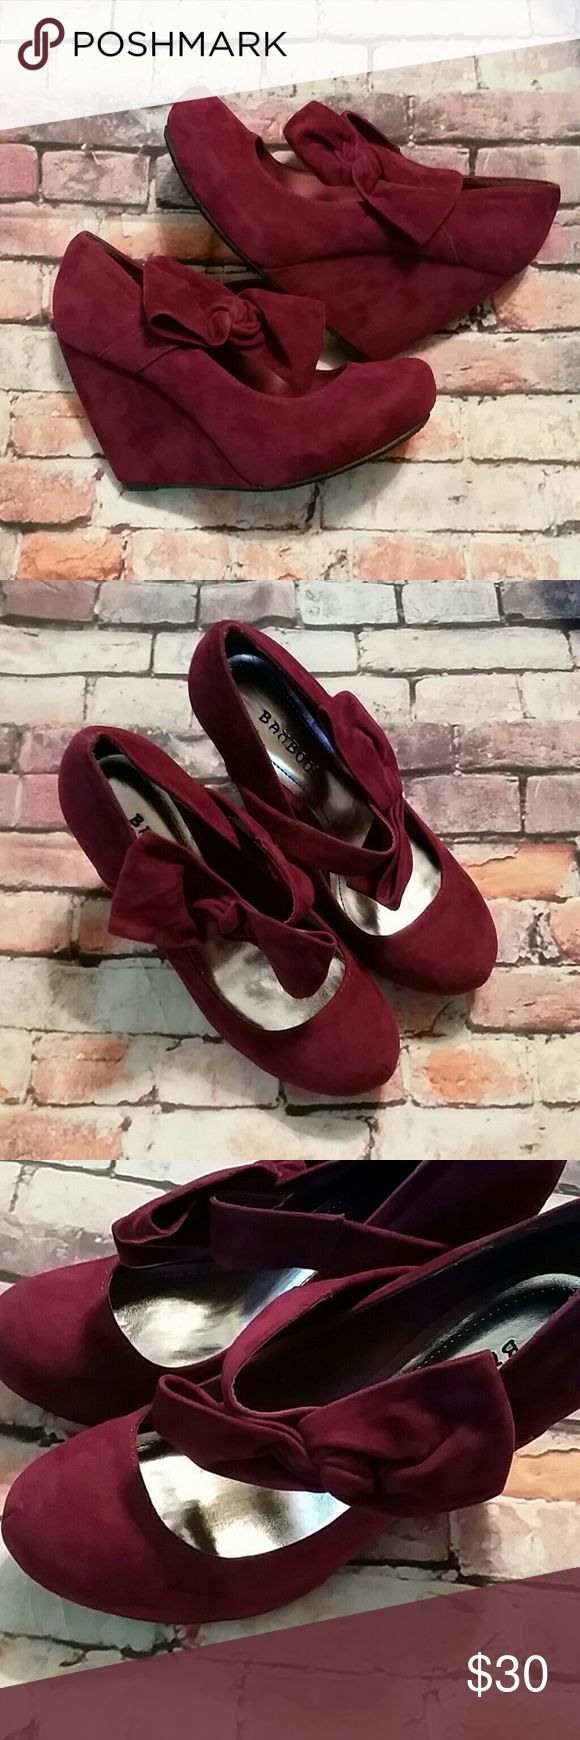 BAMBOO Red Velvet Wedge Heels Brand new, with original box.  To die for bows!  Beautiful wine or cranberry shade of velvet.  Love them, but hate the price? Make me an offer! Bamboo  Shoes Wedges